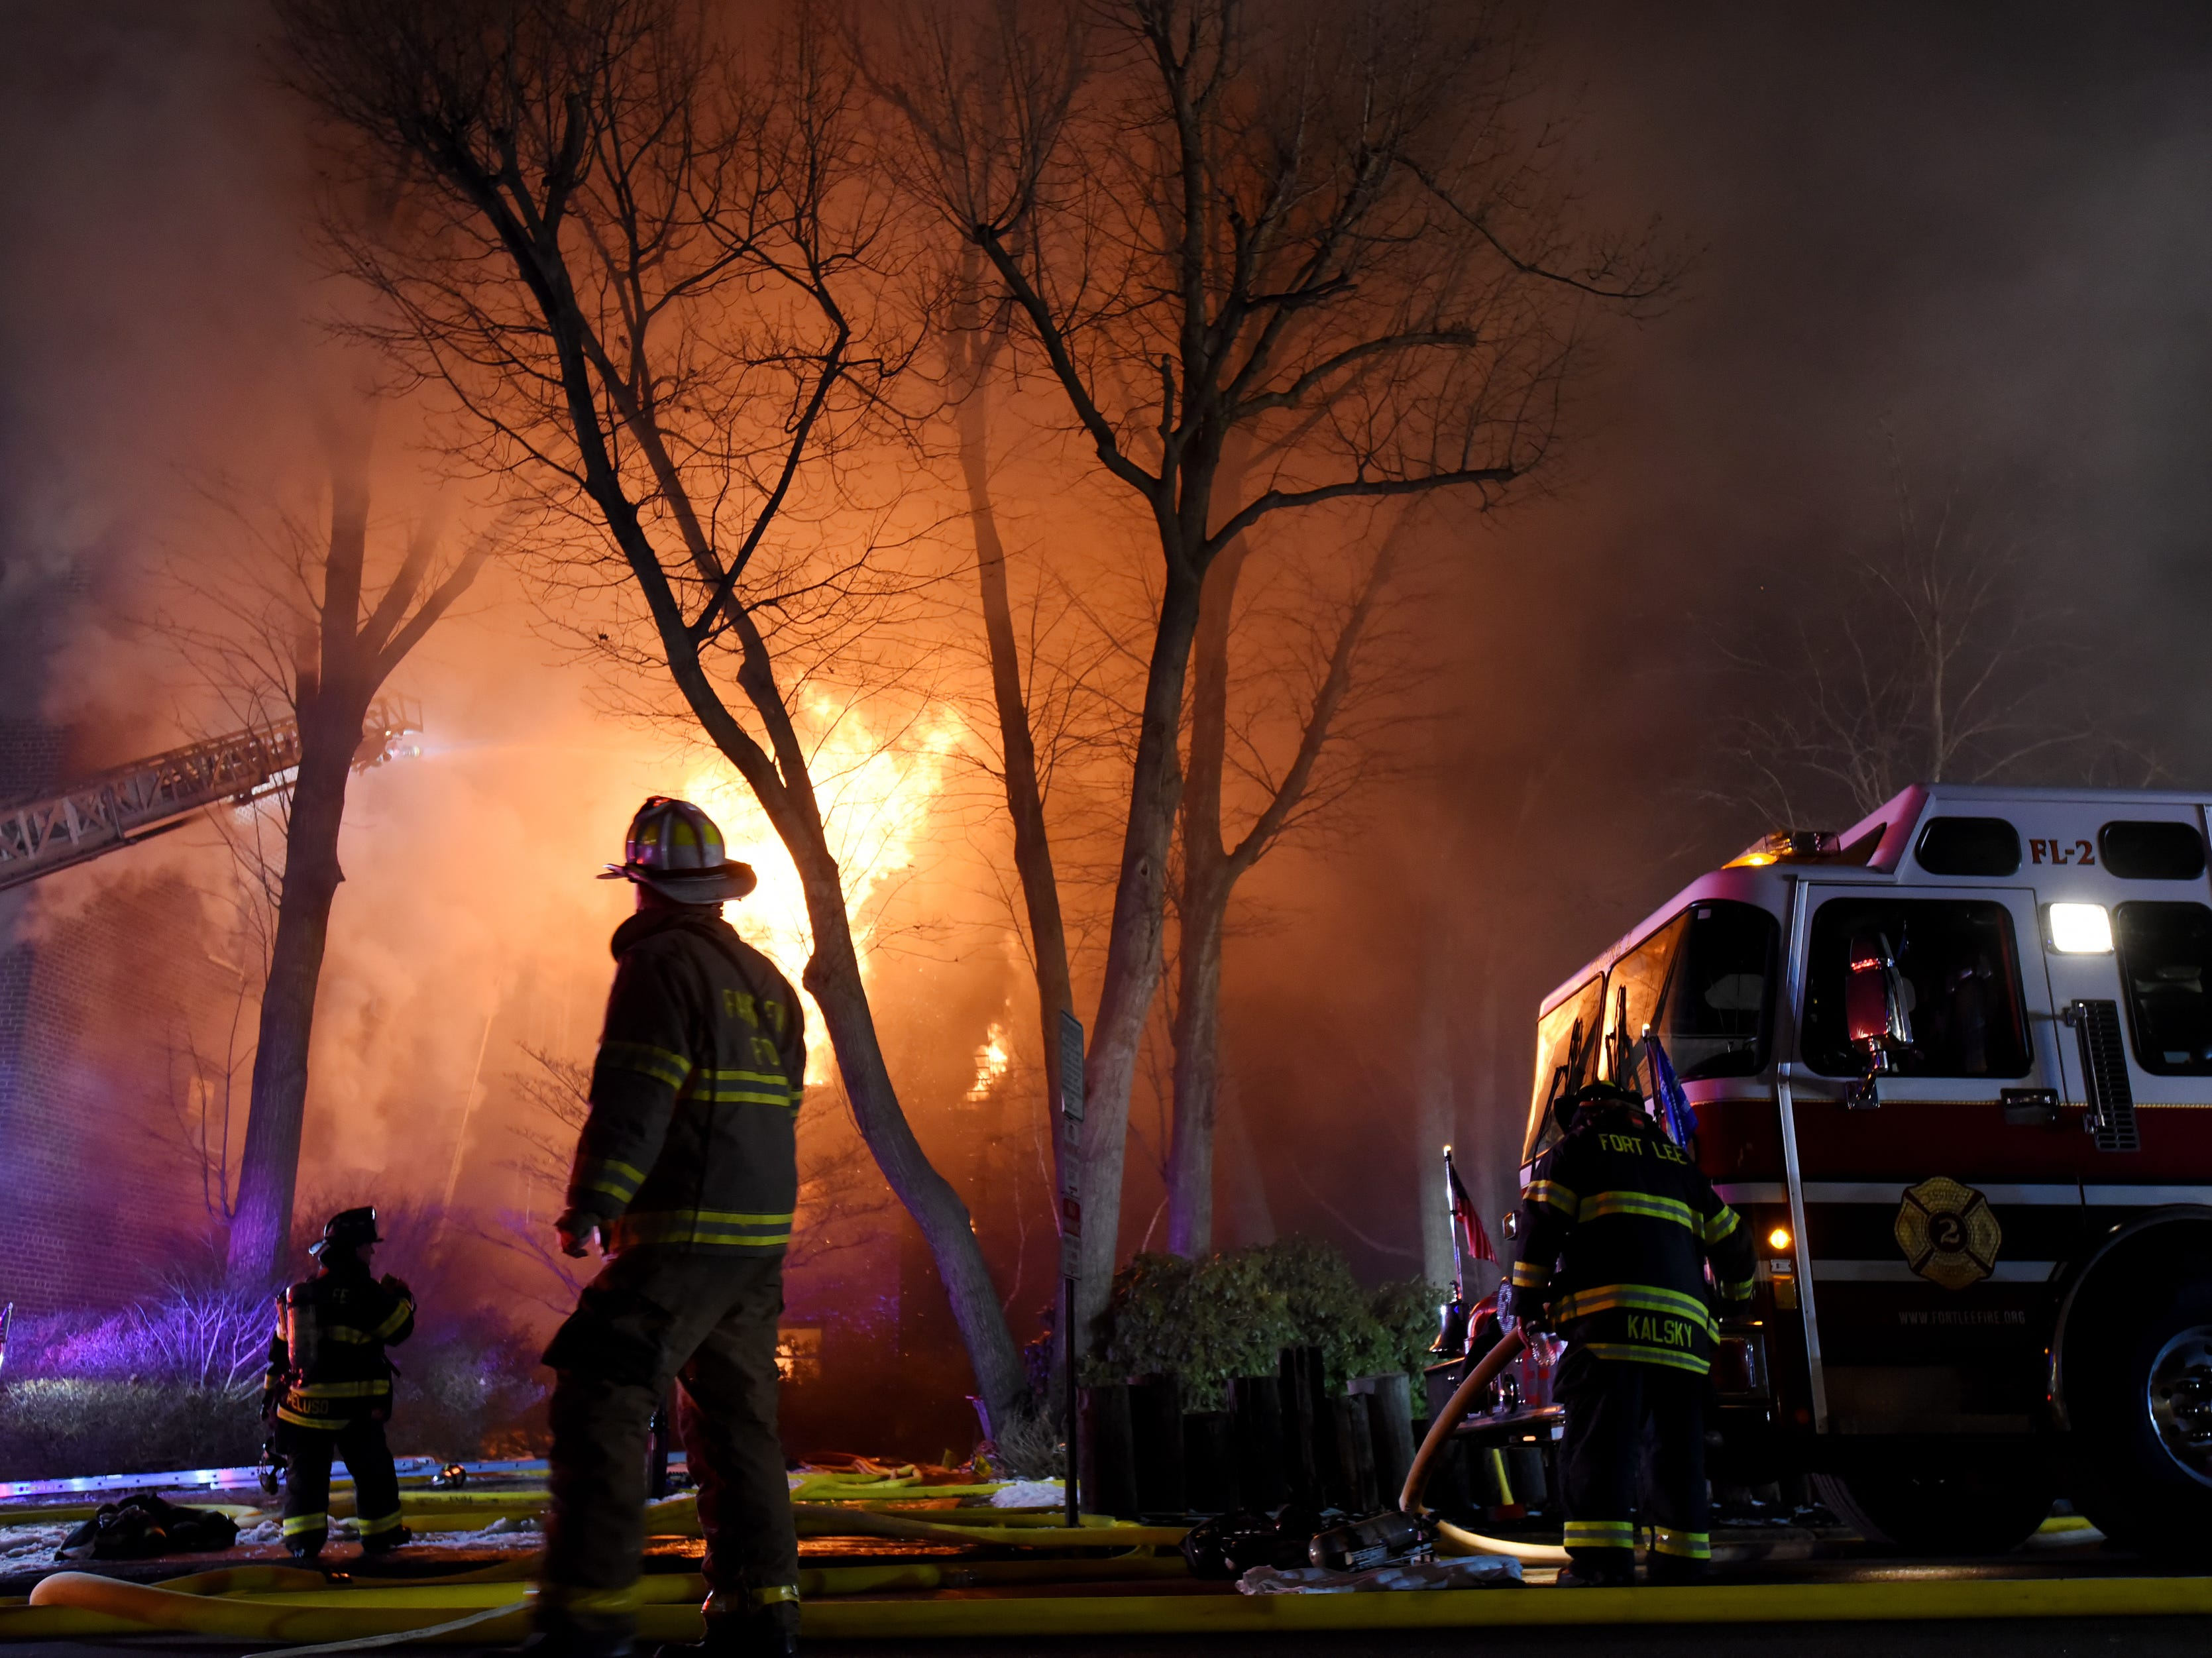 Firefighters battle a blaze at the Linwood Apartments in Fort Lee on Thursday February 14, 2019.